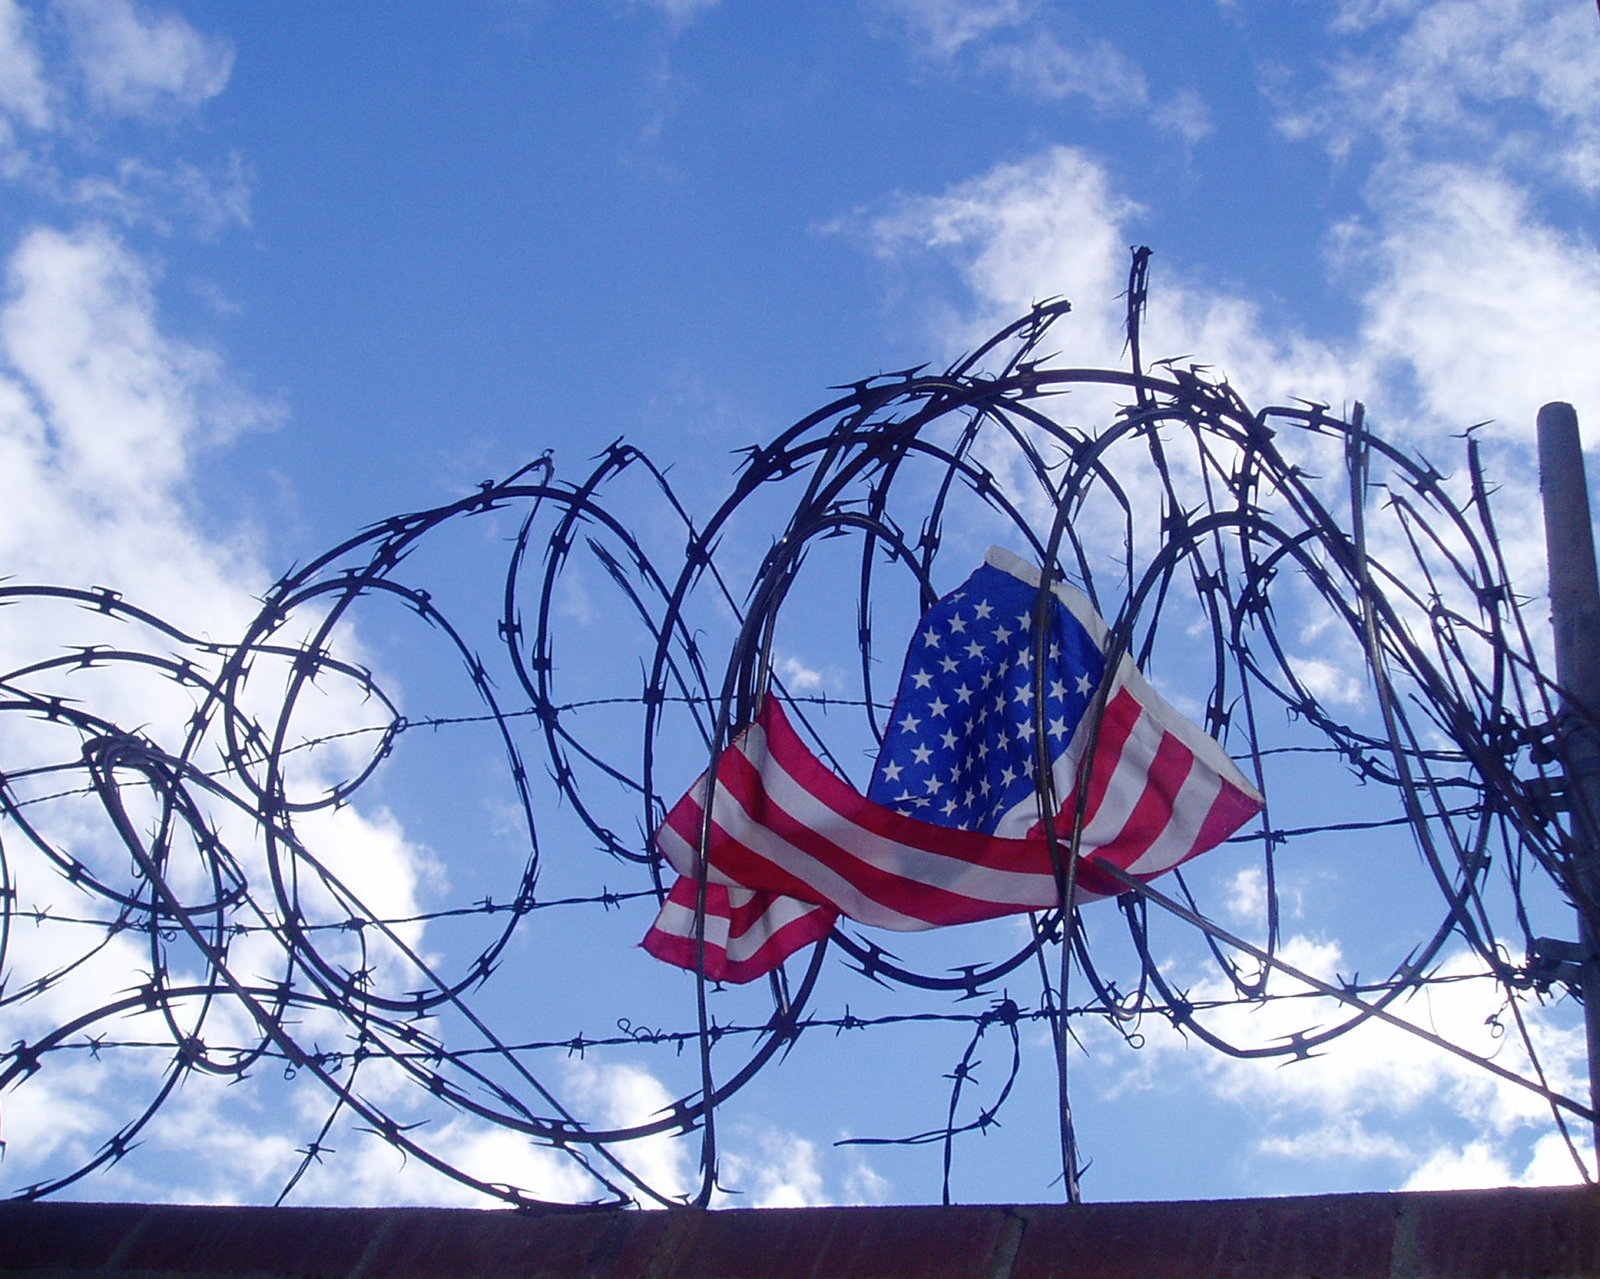 Flag in barbed wire